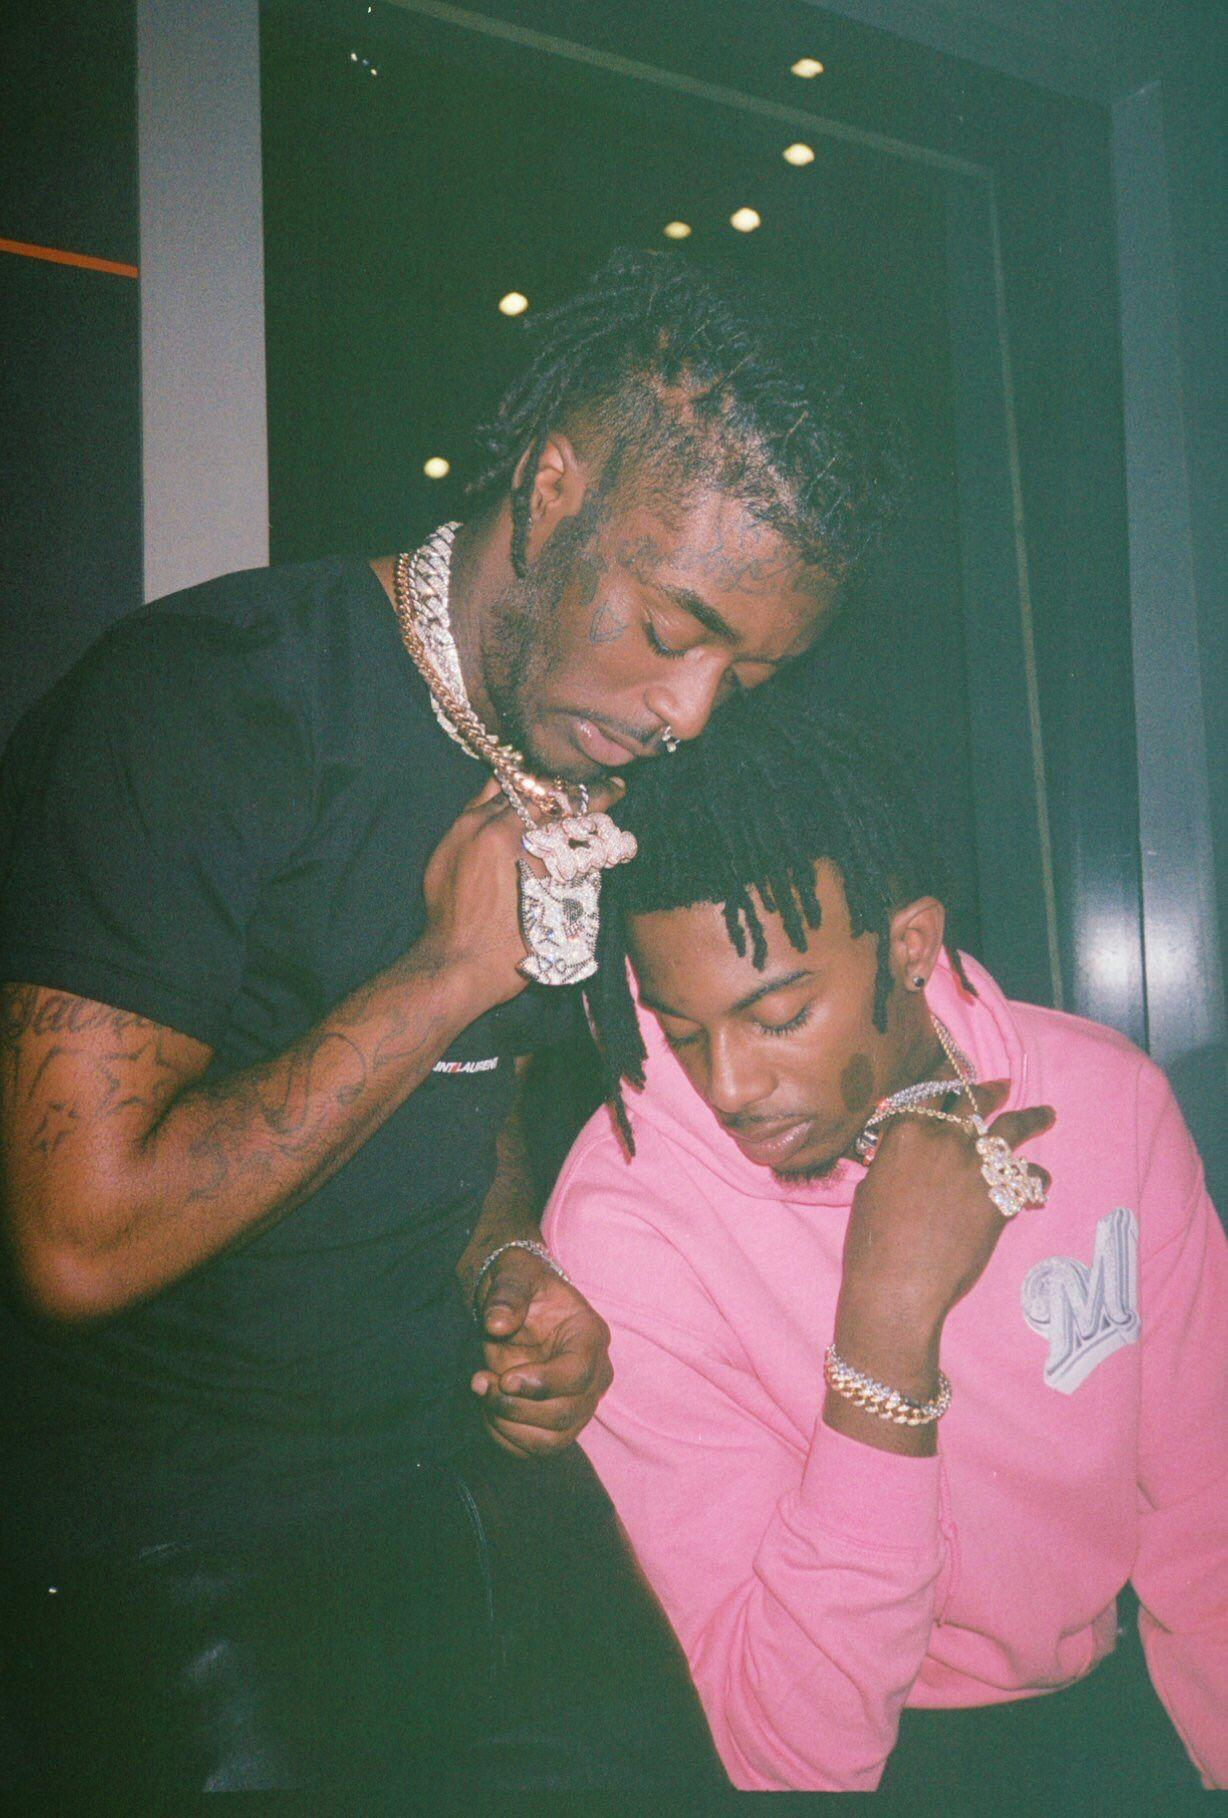 Lil Uzi Vert And Playboi Carti Wallpapers Wallpaper Cave Bomber tiger lil uzi vert necklace danish poster pictur box music hip hop hoodi pendant rapper lil uzi vert t shirt music poster vintage. lil uzi vert and playboi carti